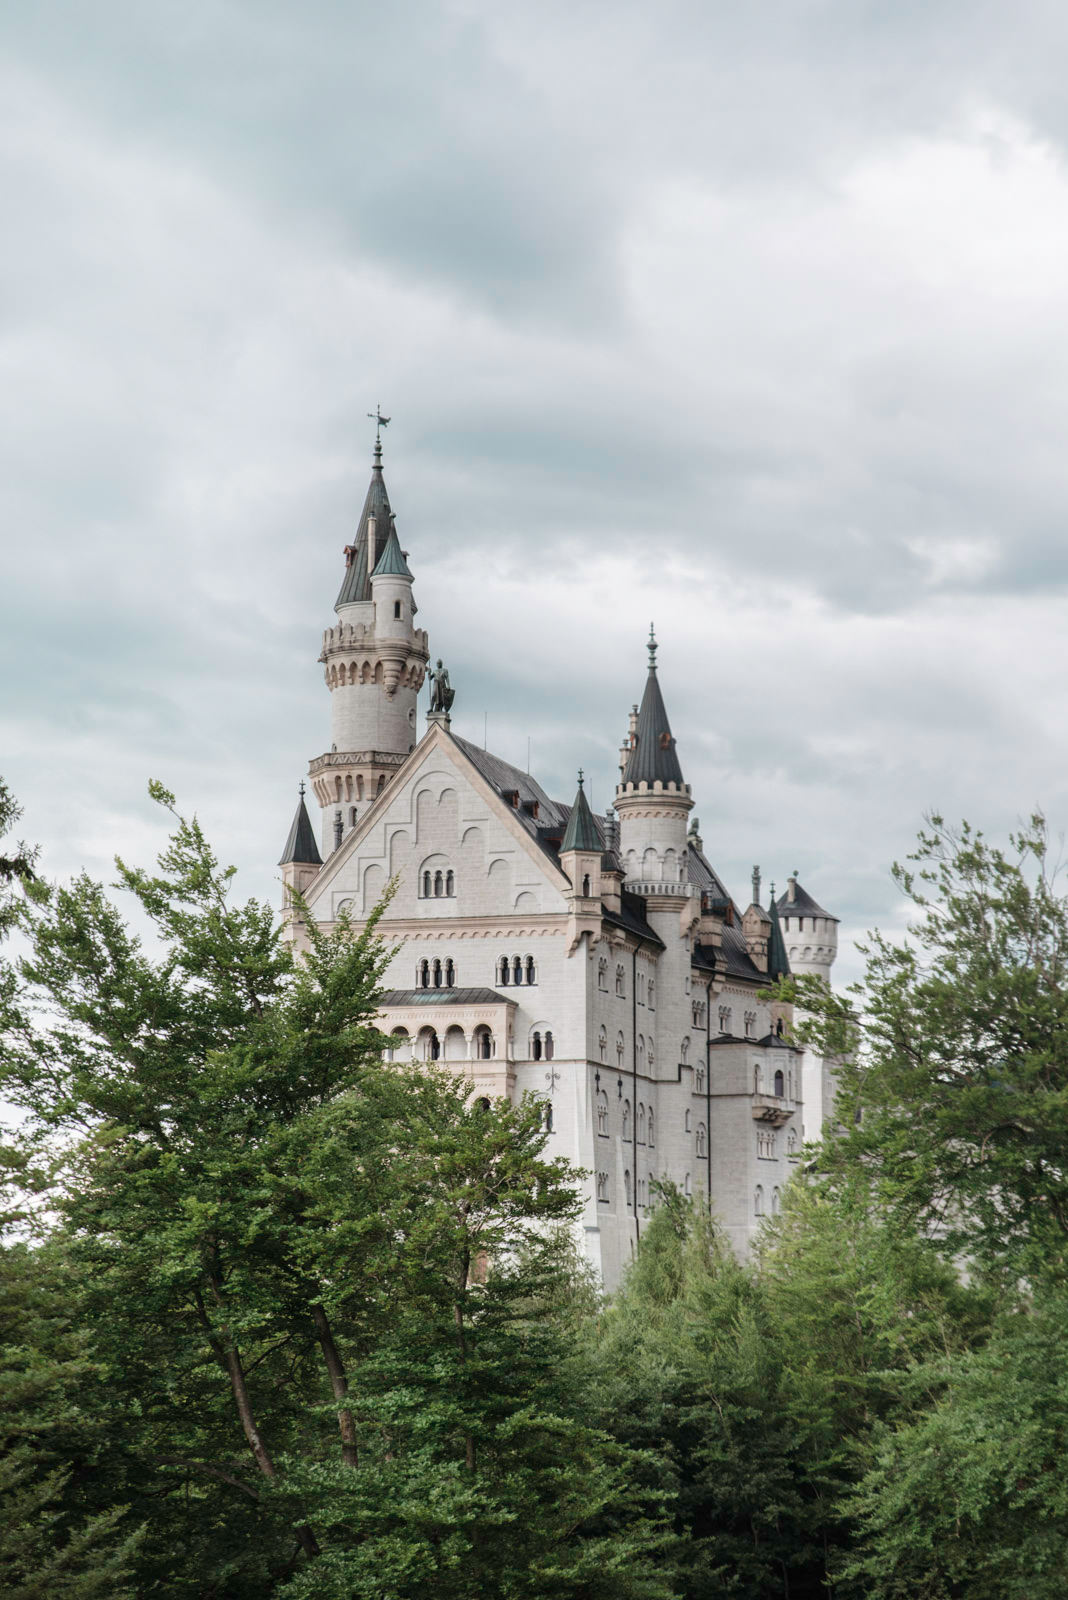 Blog-Mode-And-The-City-Lifestyle-Roadtrip-Allemagne-Autriche14